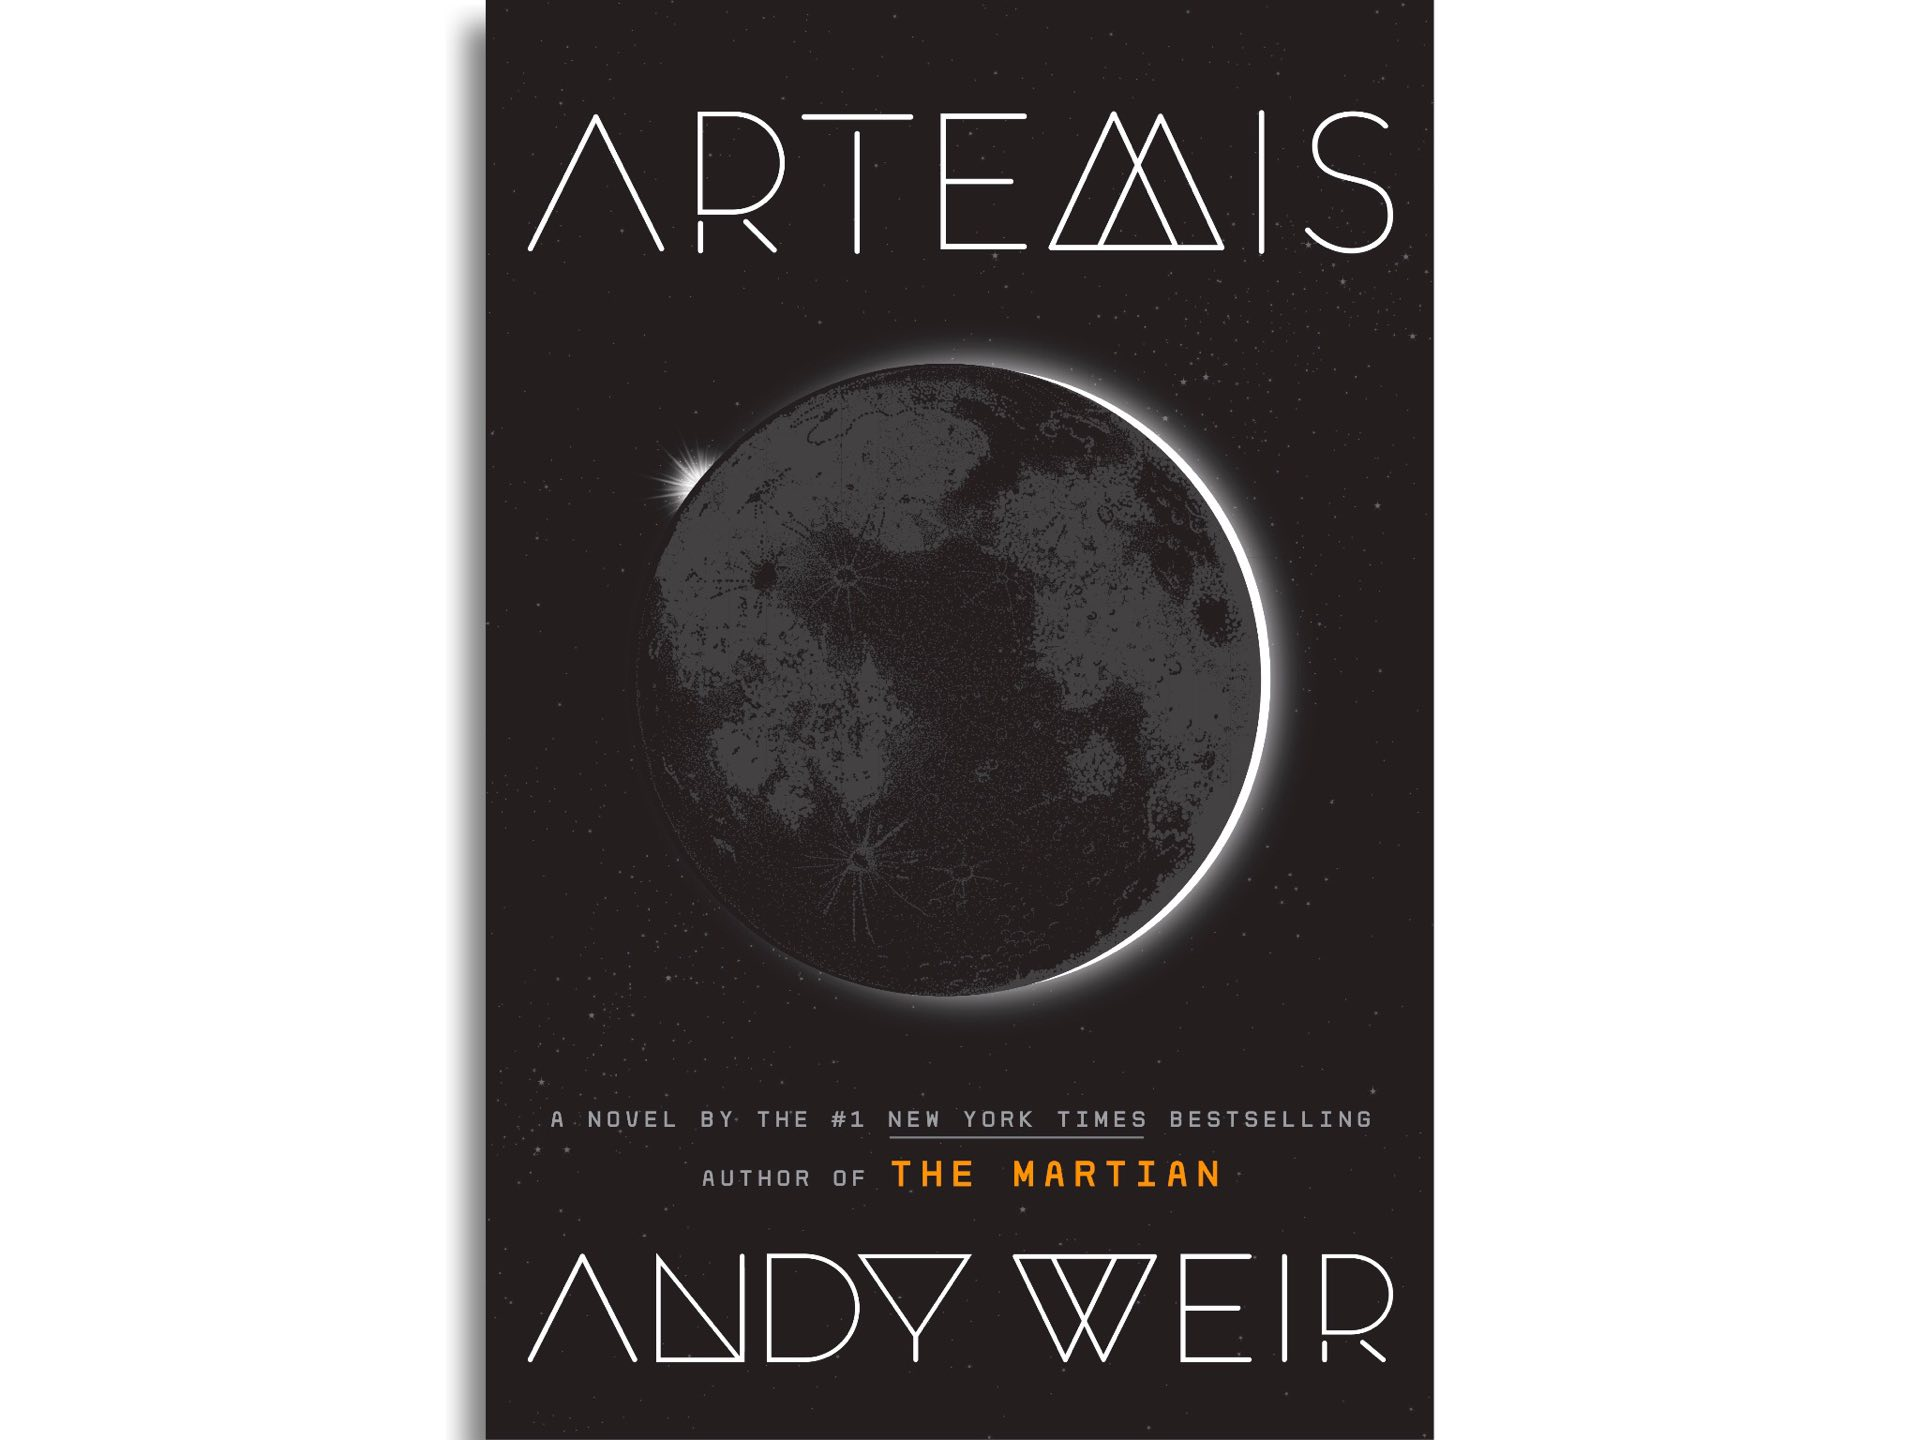 Artemis by Andy Weir is Out Now 11